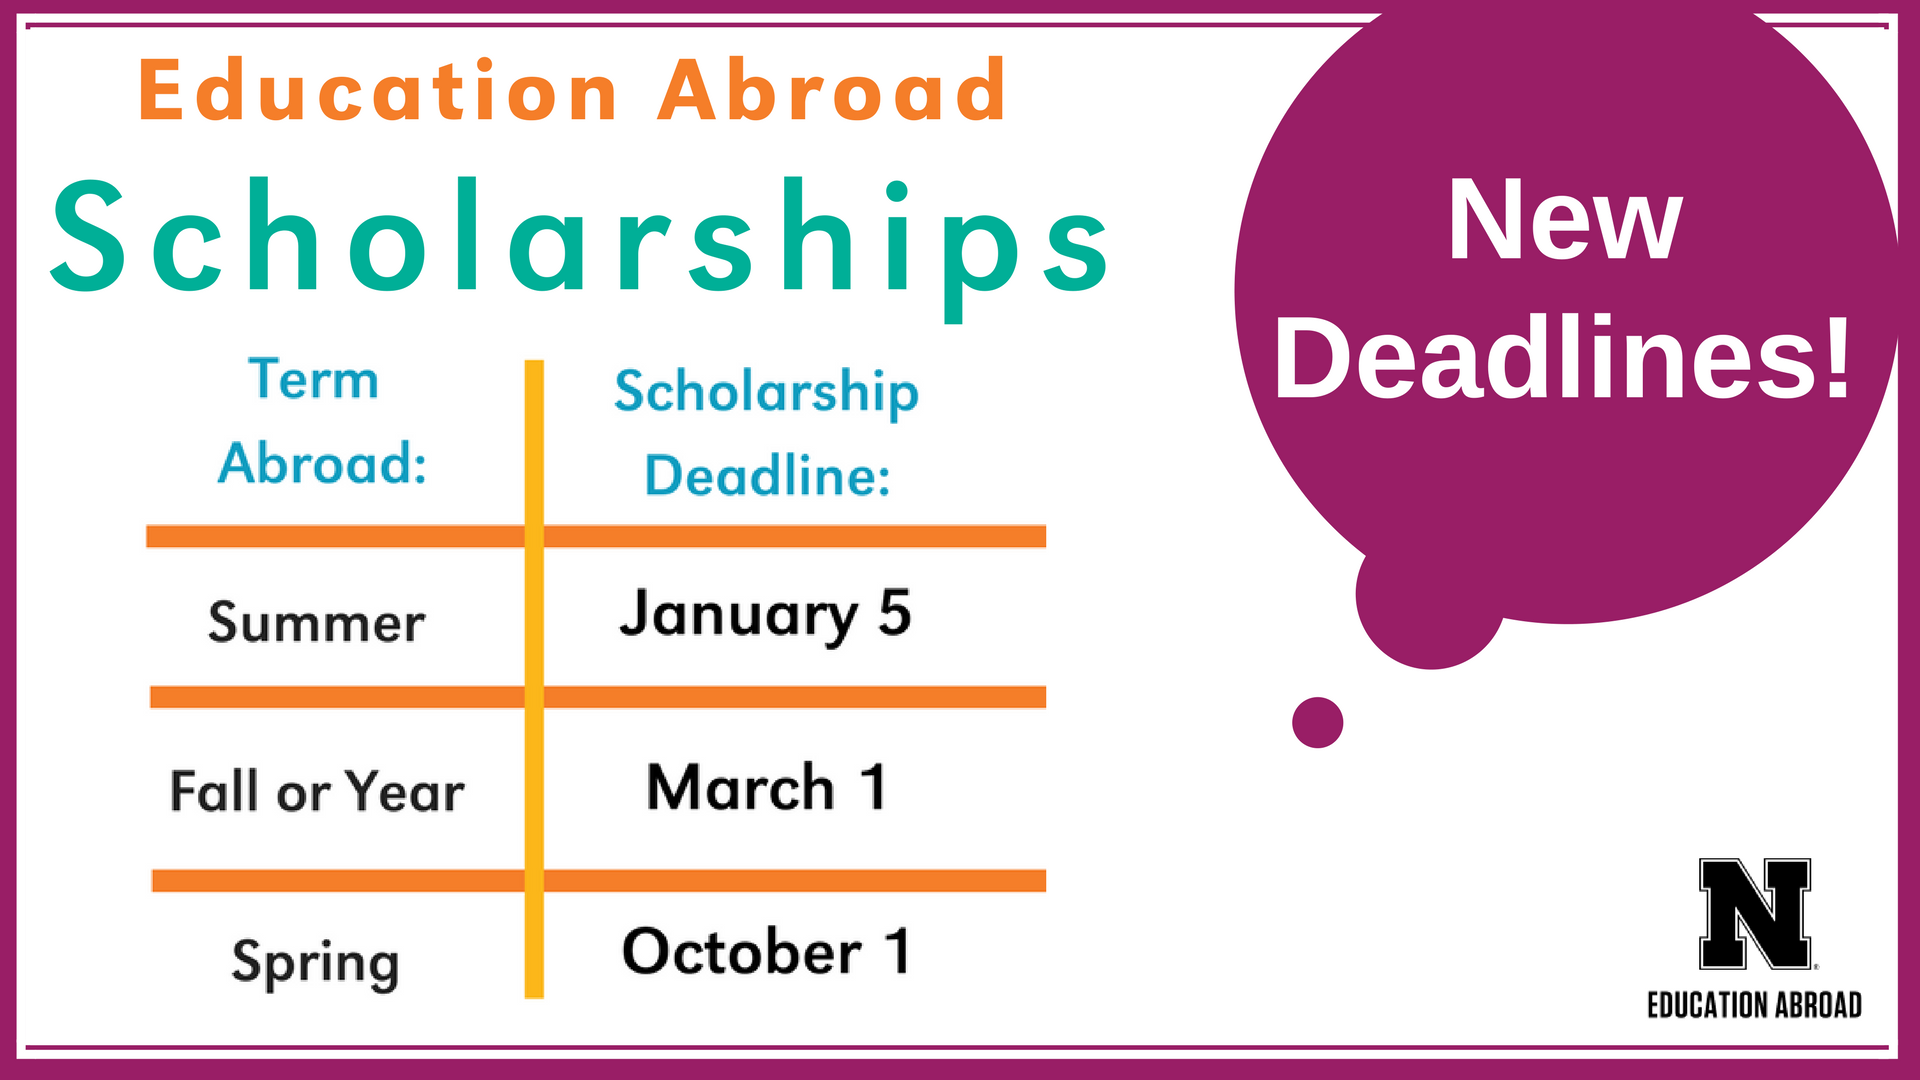 Education Abroad Scholarships New Deadlines This Year